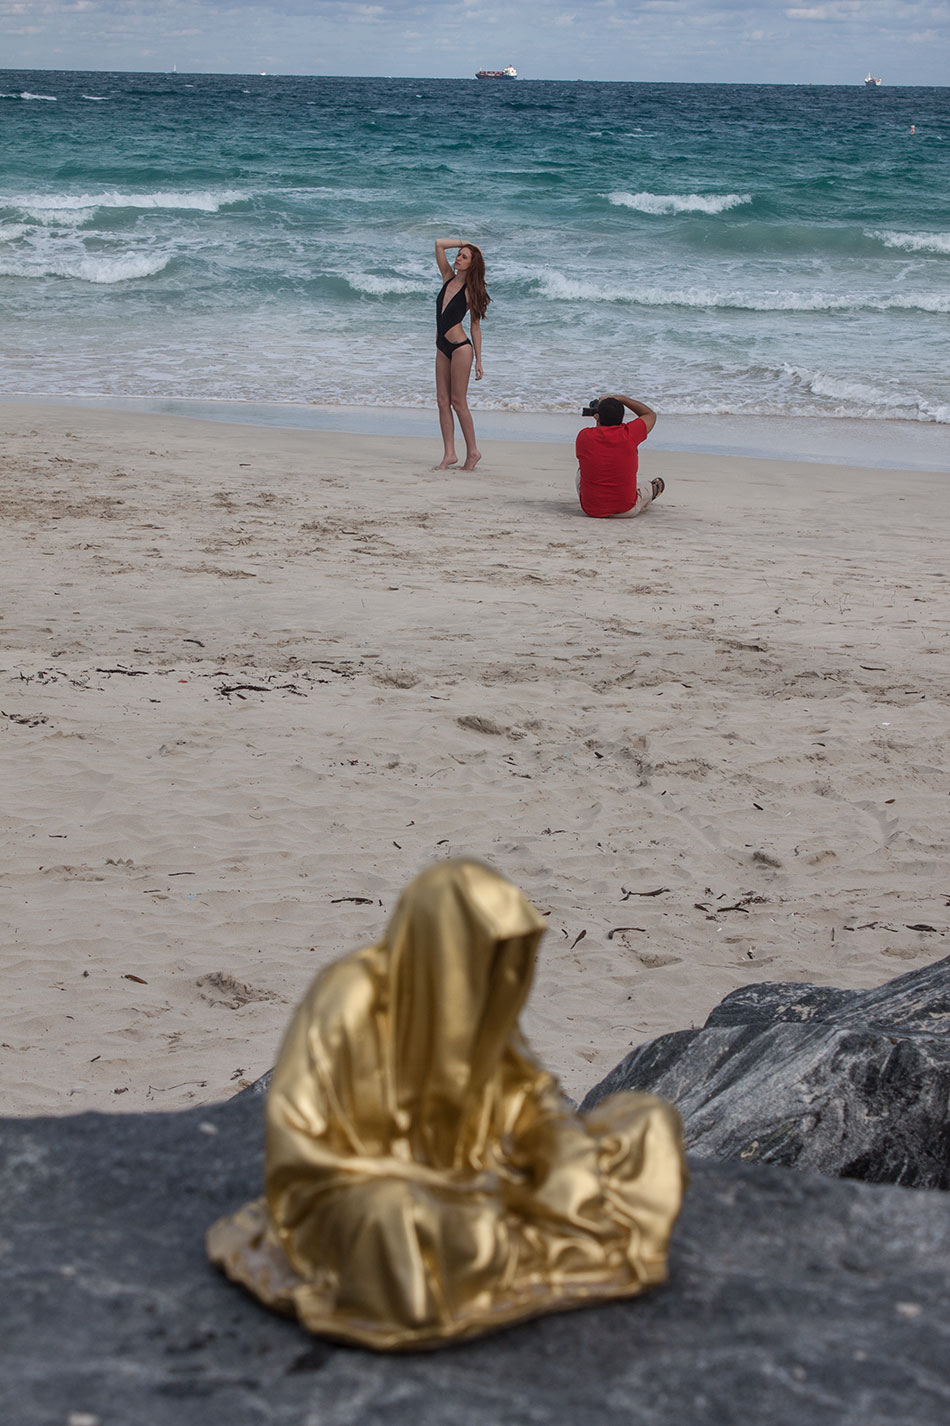 public-art-basel-miami-beach-fair-usa-florida-guardians-of-time-manfred-kili-kielnhofer-contemporary-fine-art-modern-arts-design-antiques-sculpture-6861